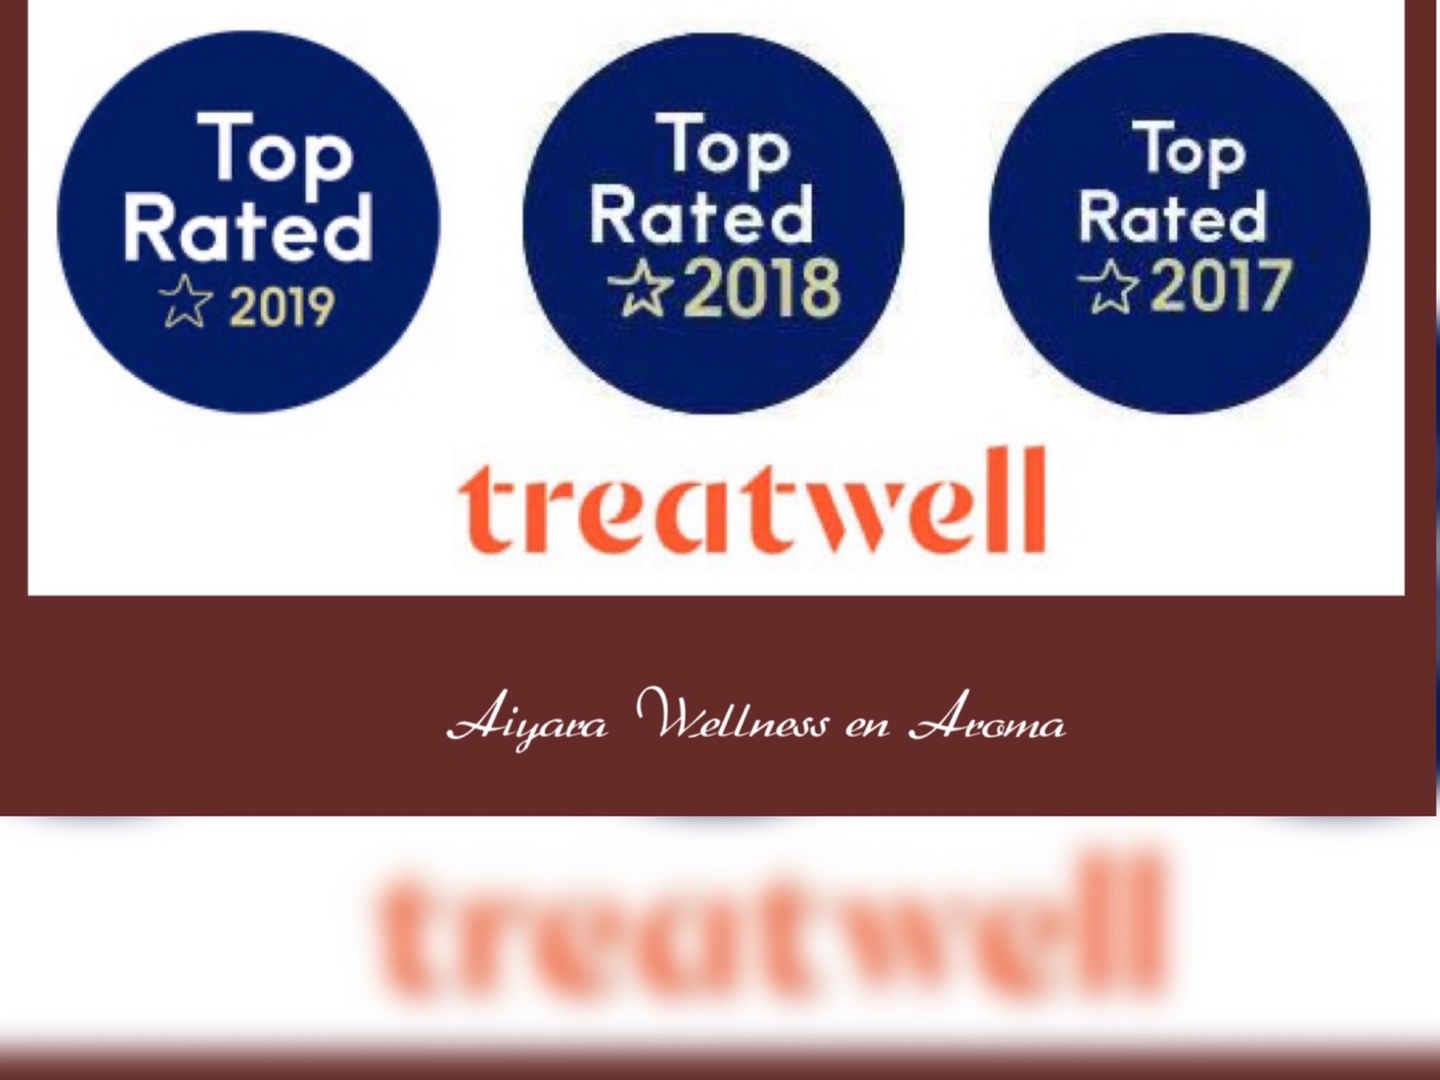 Top rated Treatwell